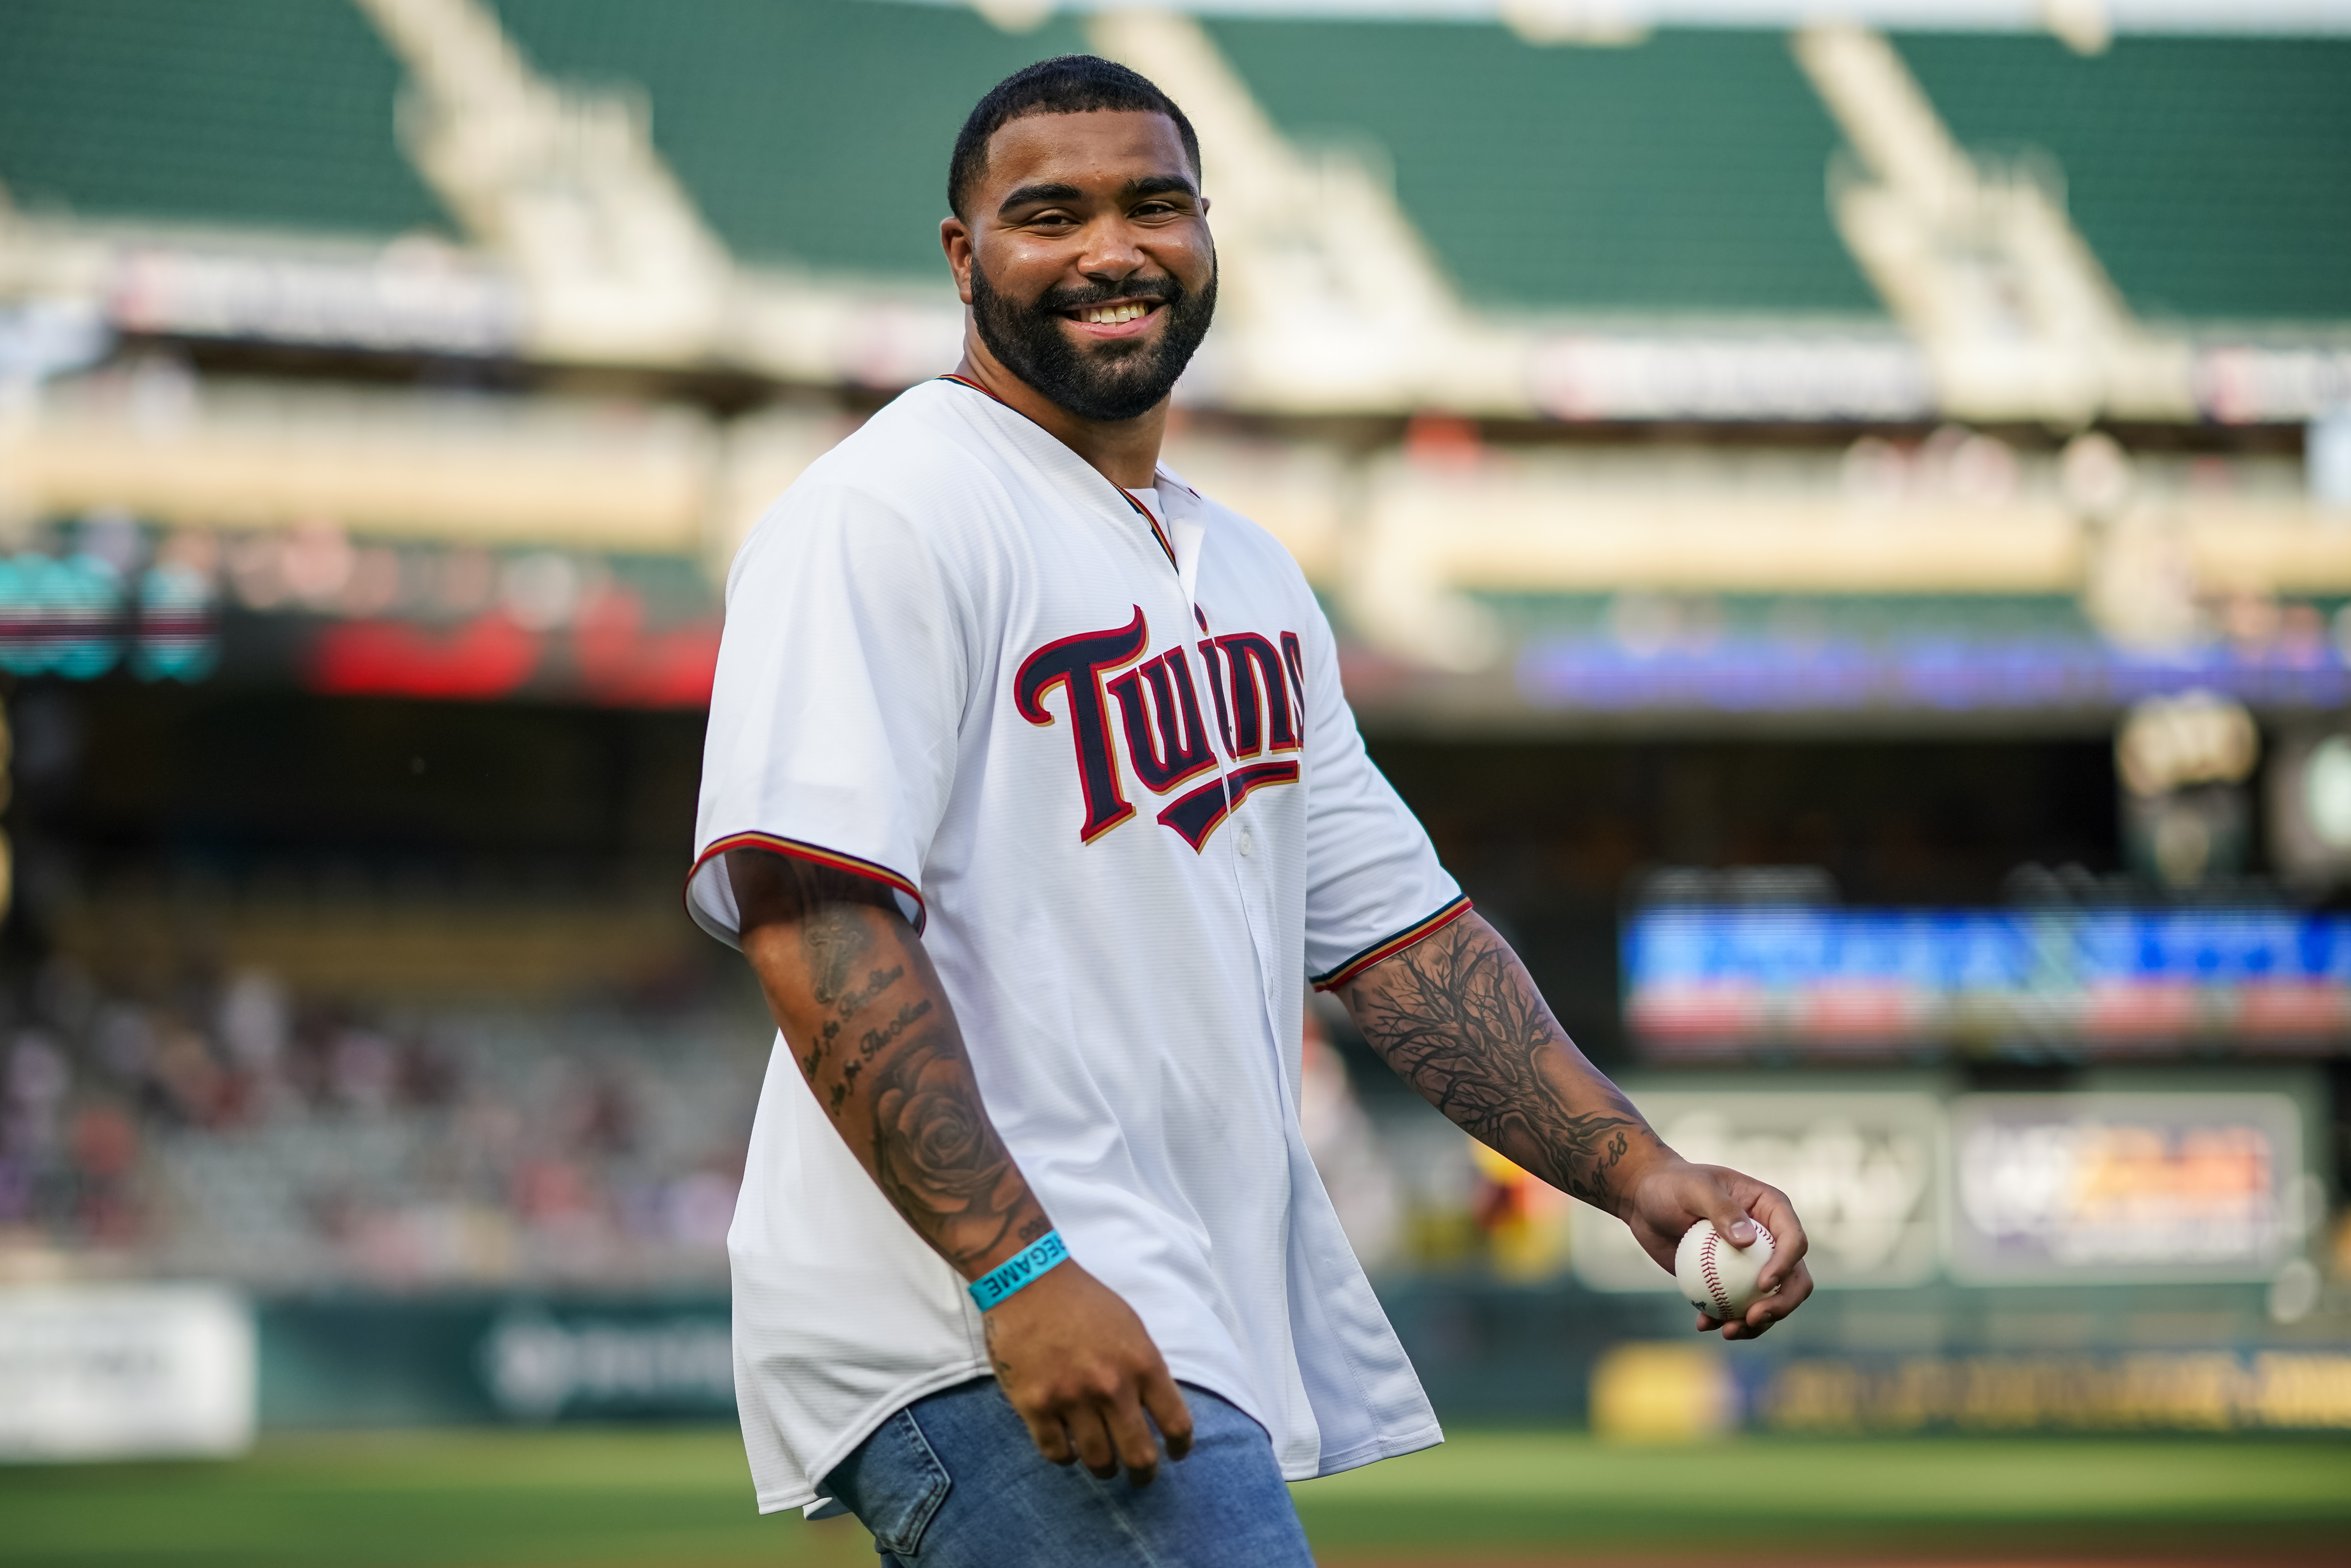 Gable Steveson throws out the first pitch at a recent Minnesota Twins game.